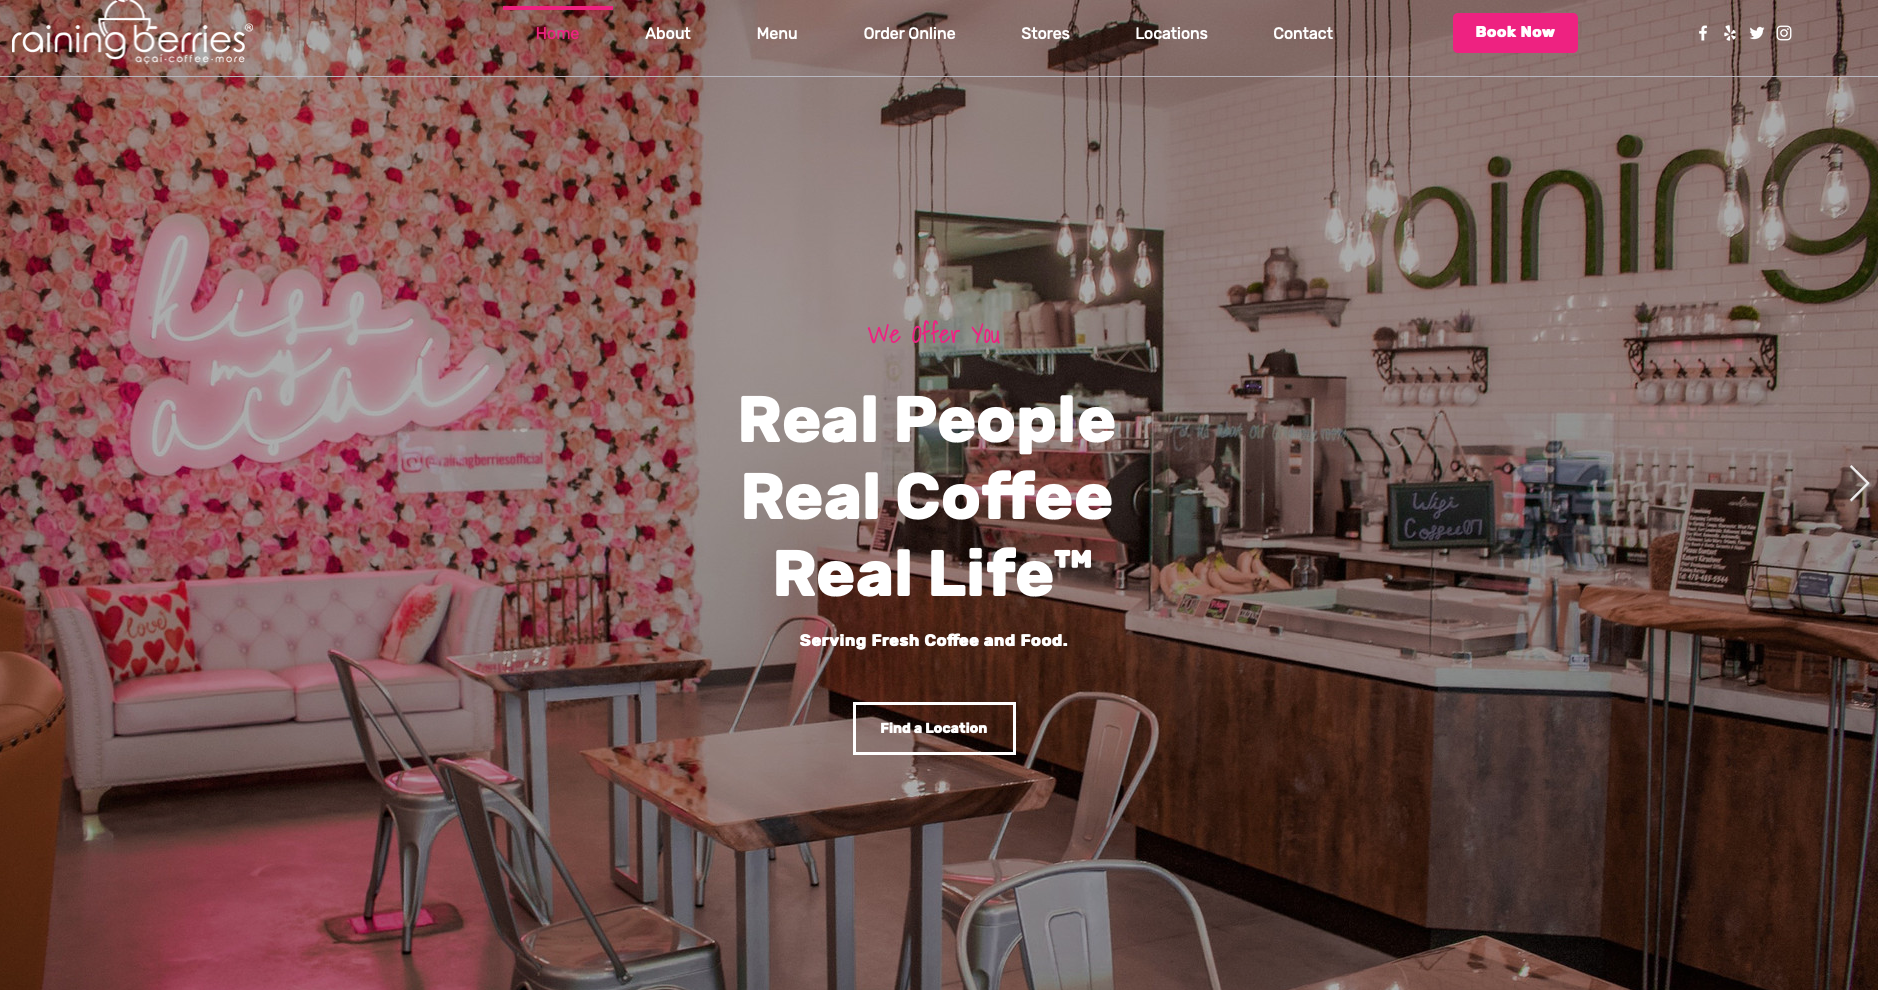 Raining Berries A coffeeshop with a twist. Check it out to find ou...